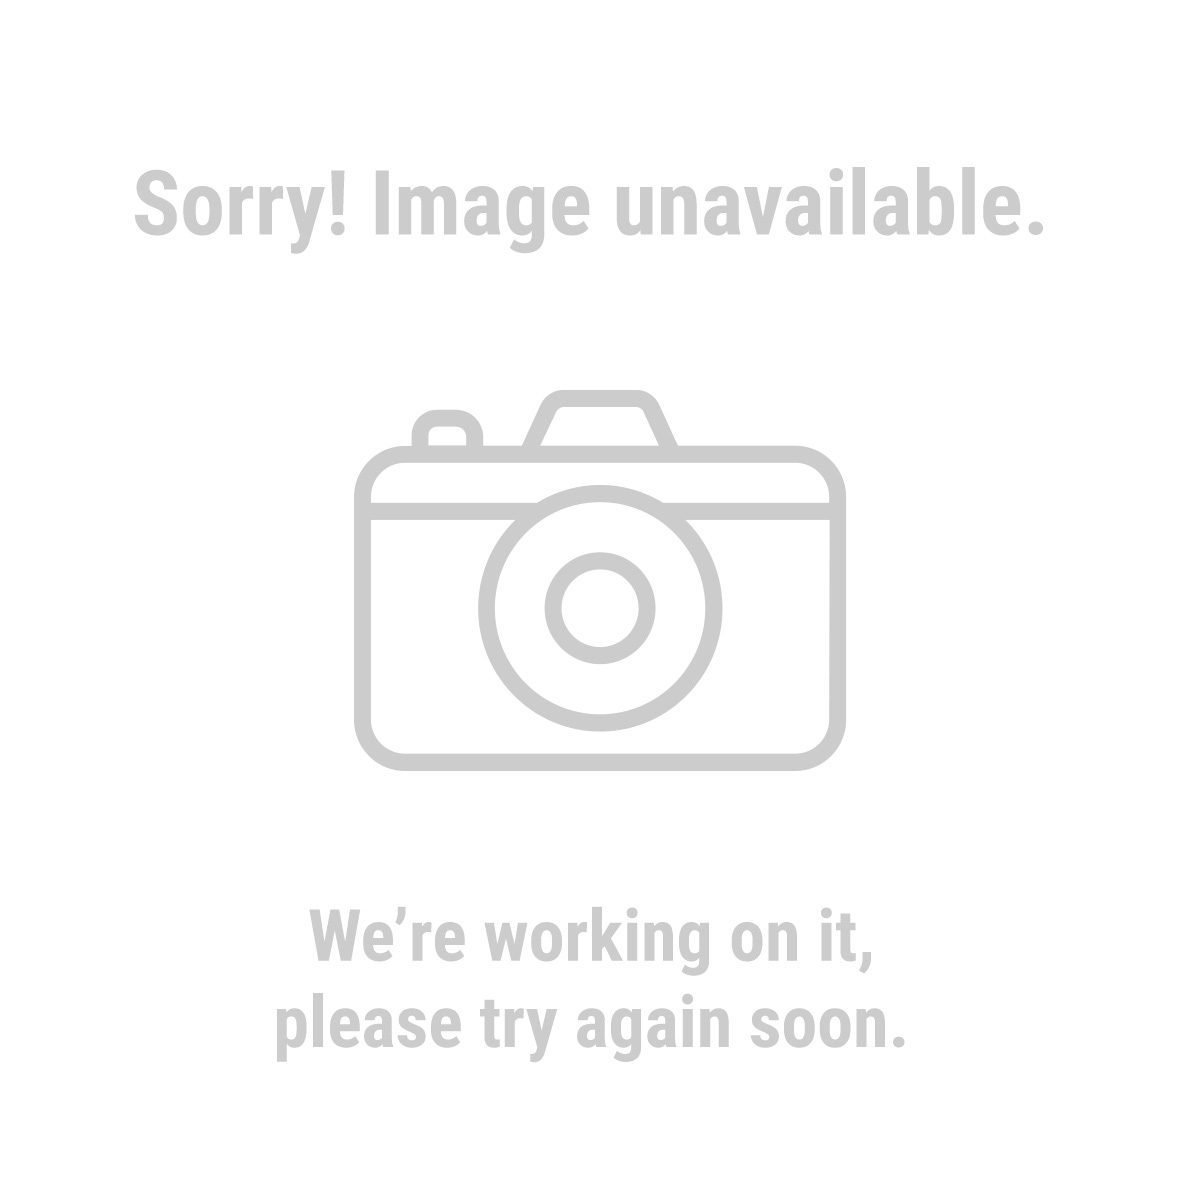 Pittsburgh 69376 4 Piece Tongue and Groove Joint Pliers Set